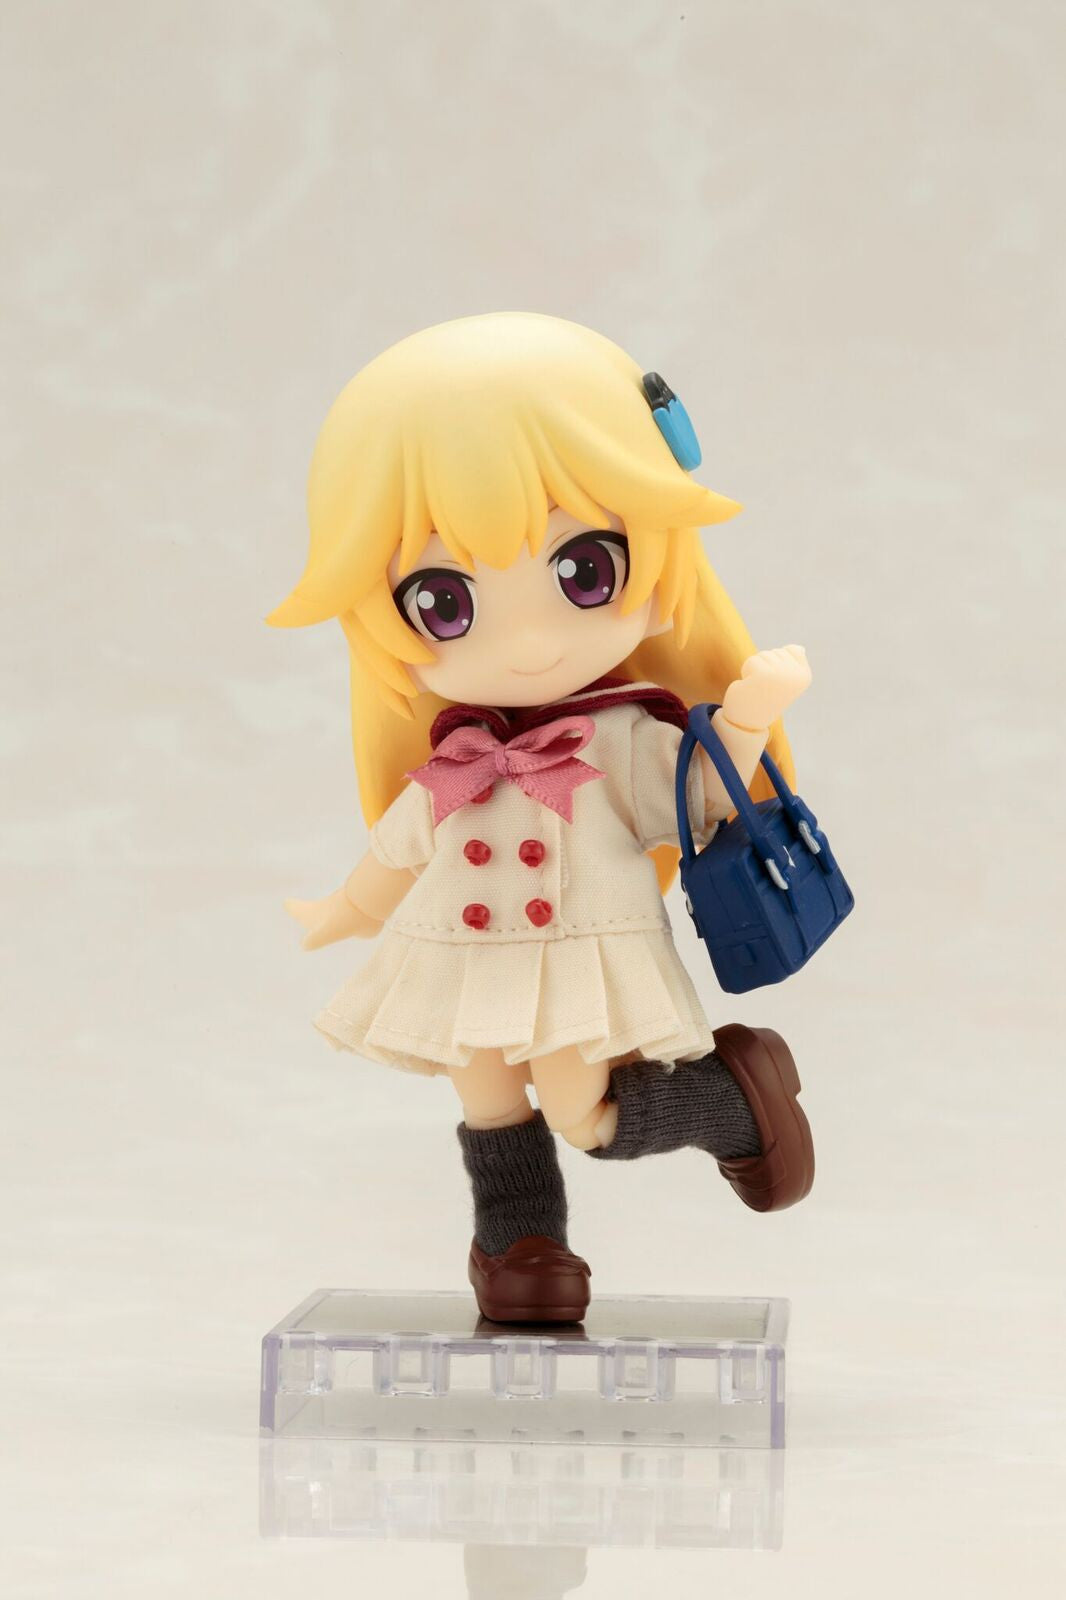 KOTOBUKIYA SCHOOL SET (SAILOR DRESS) CU-POCHE EXTRA